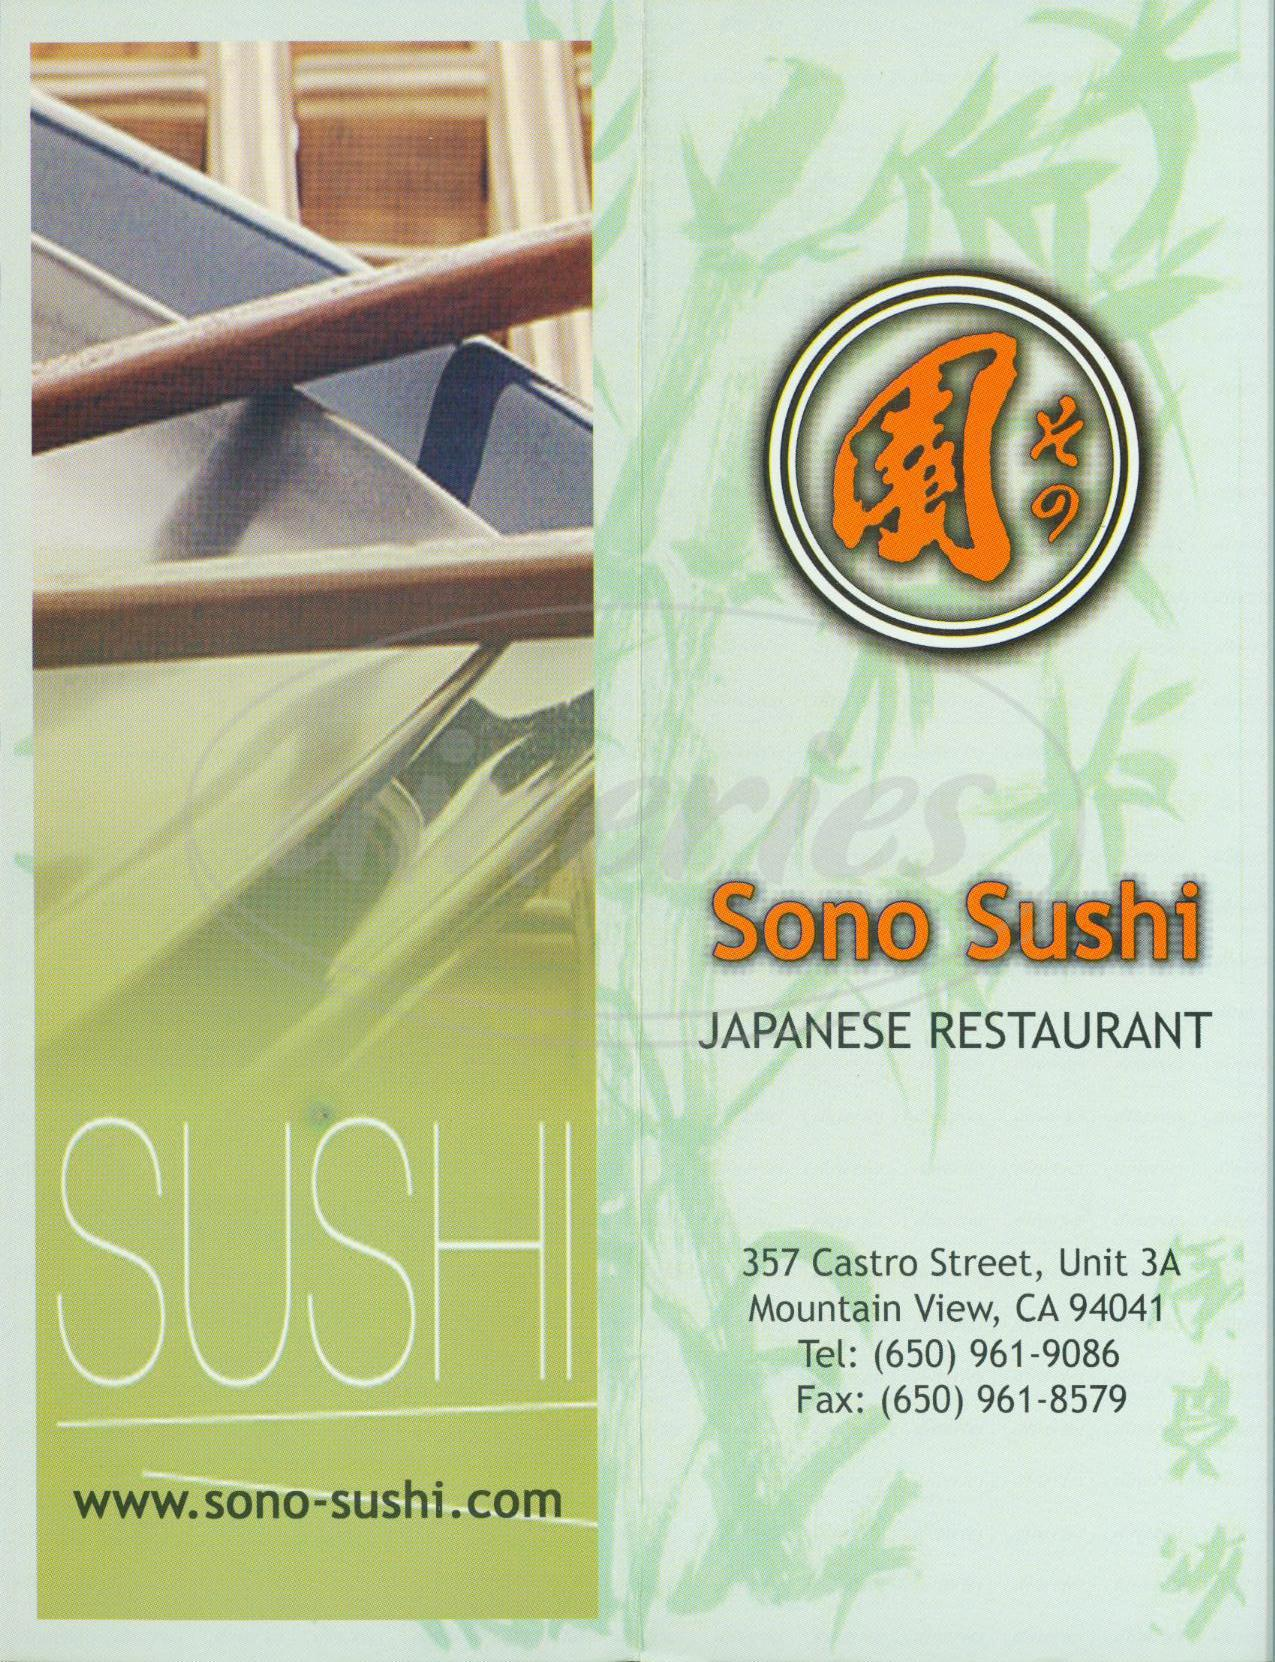 menu for Sono Sushi